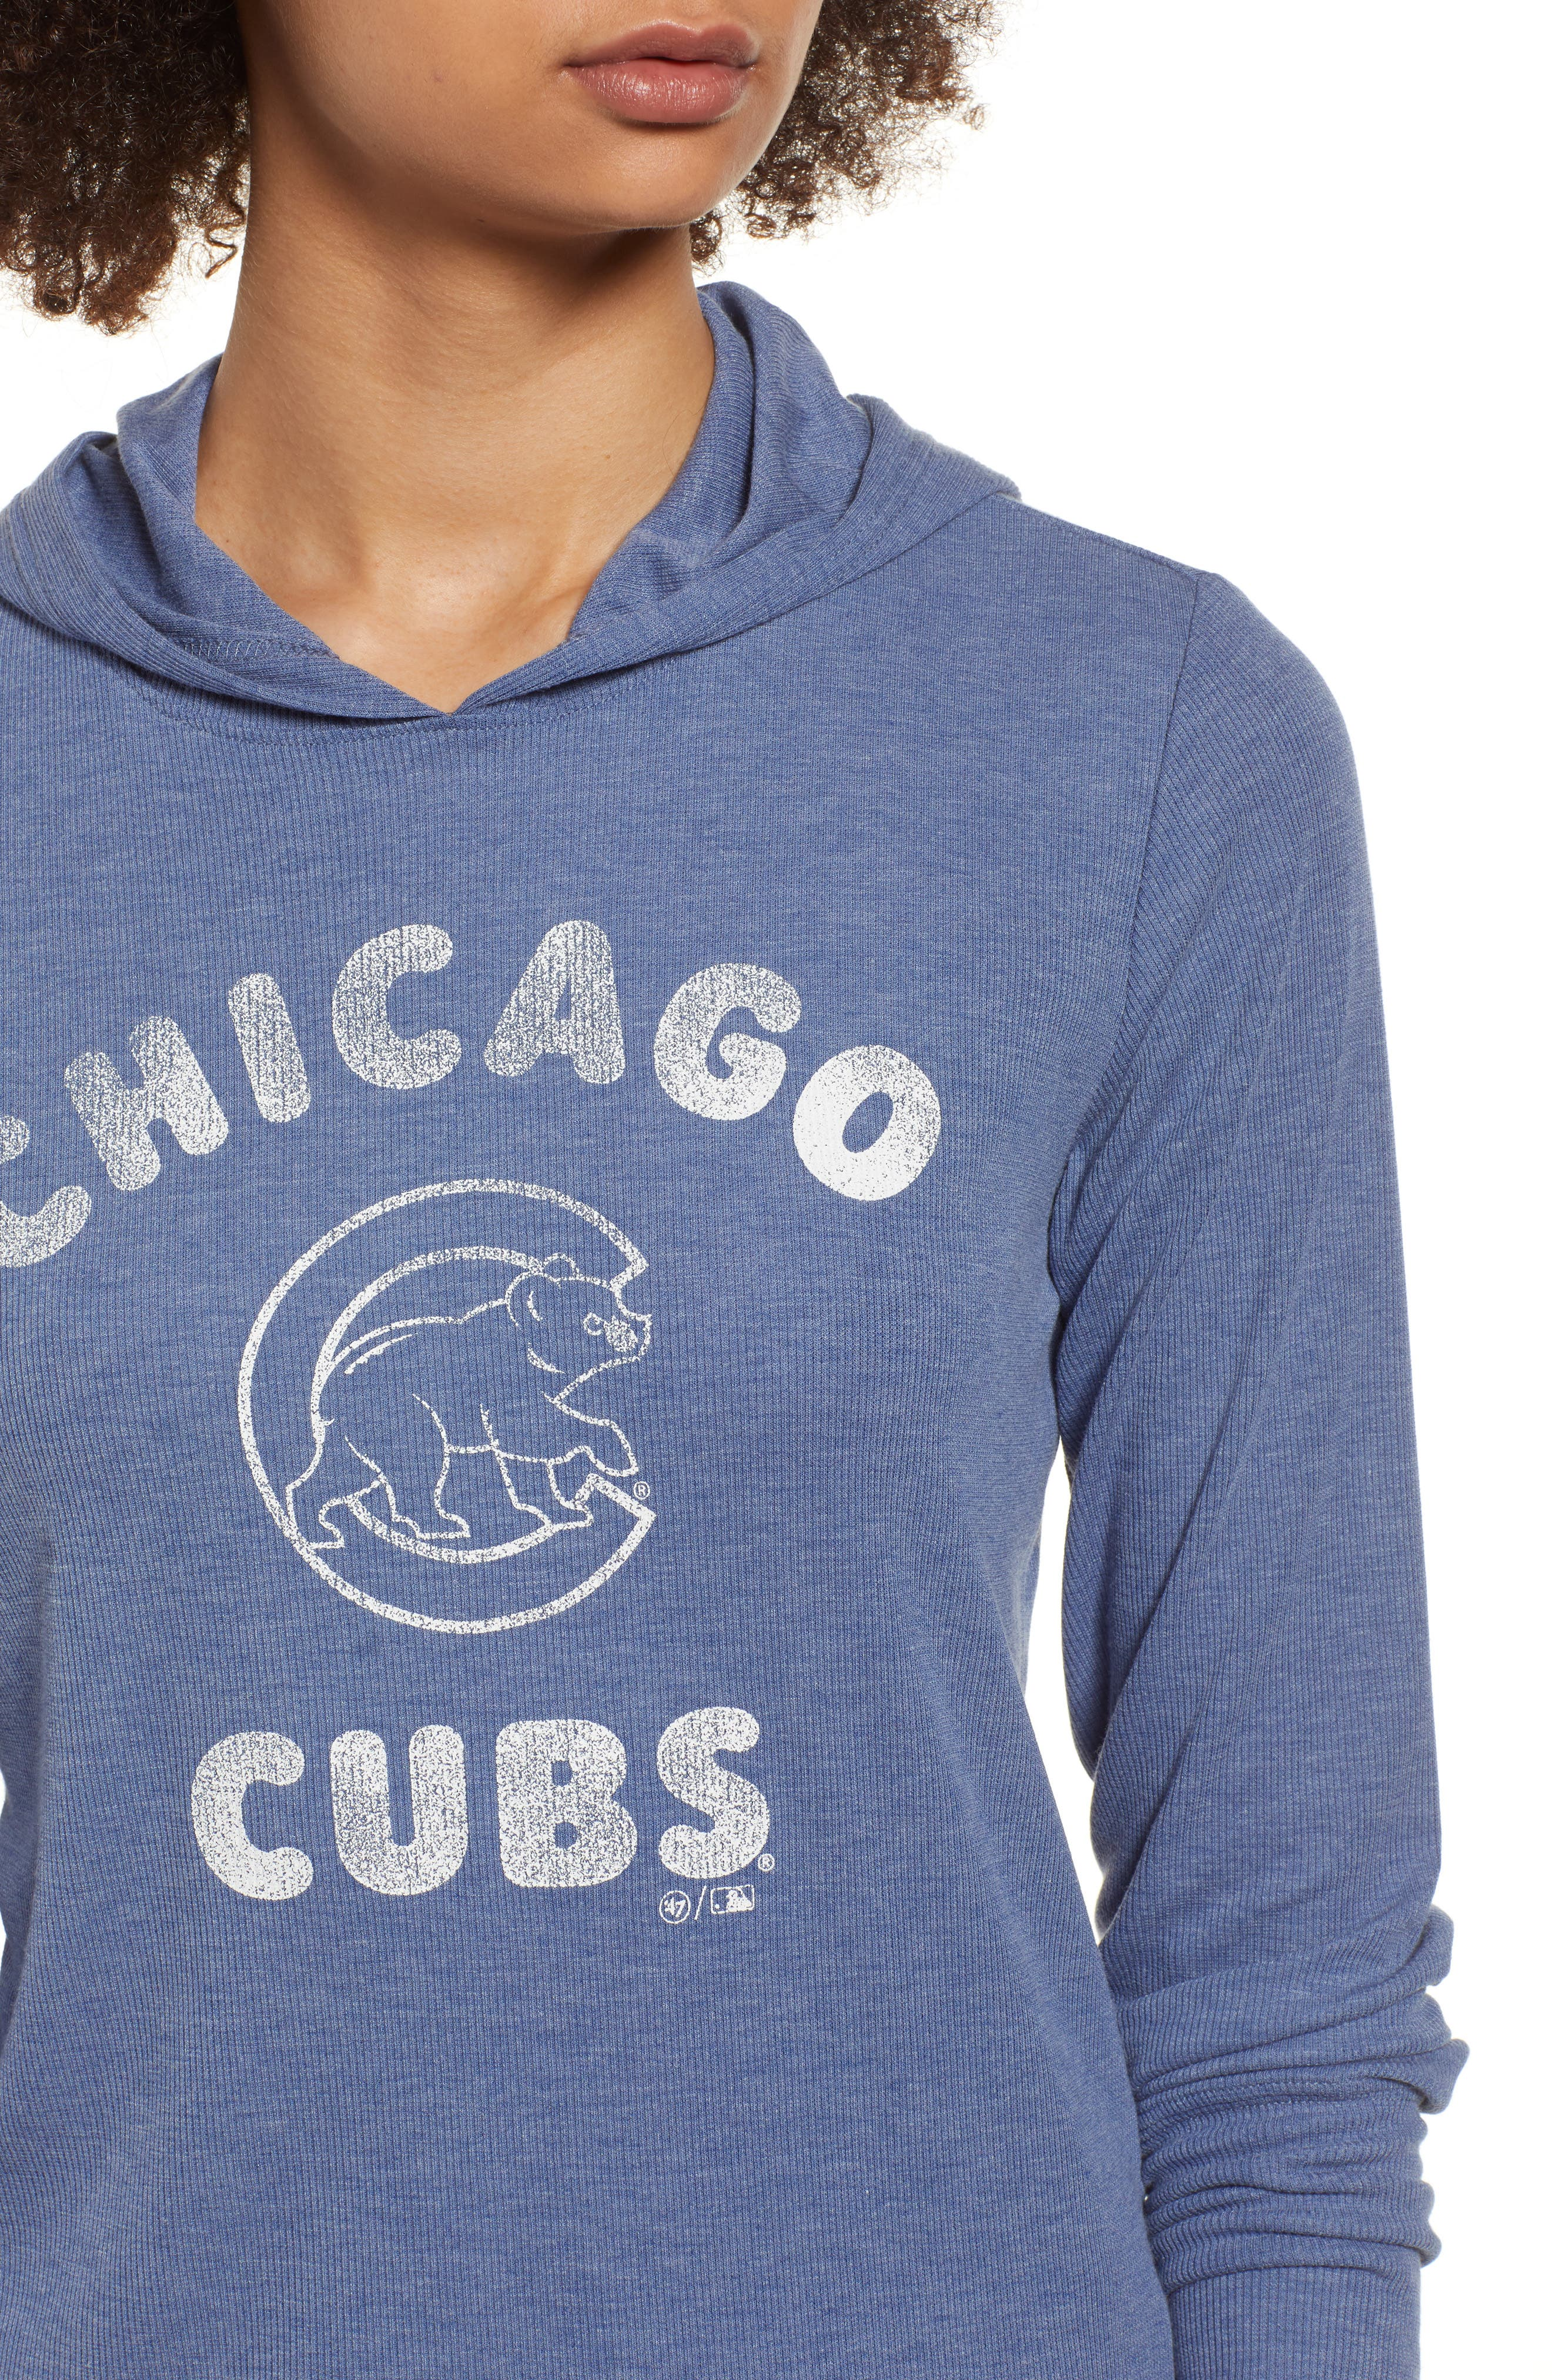 Campbell Chicago Cubs Rib Knit Hoodie,                             Alternate thumbnail 4, color,